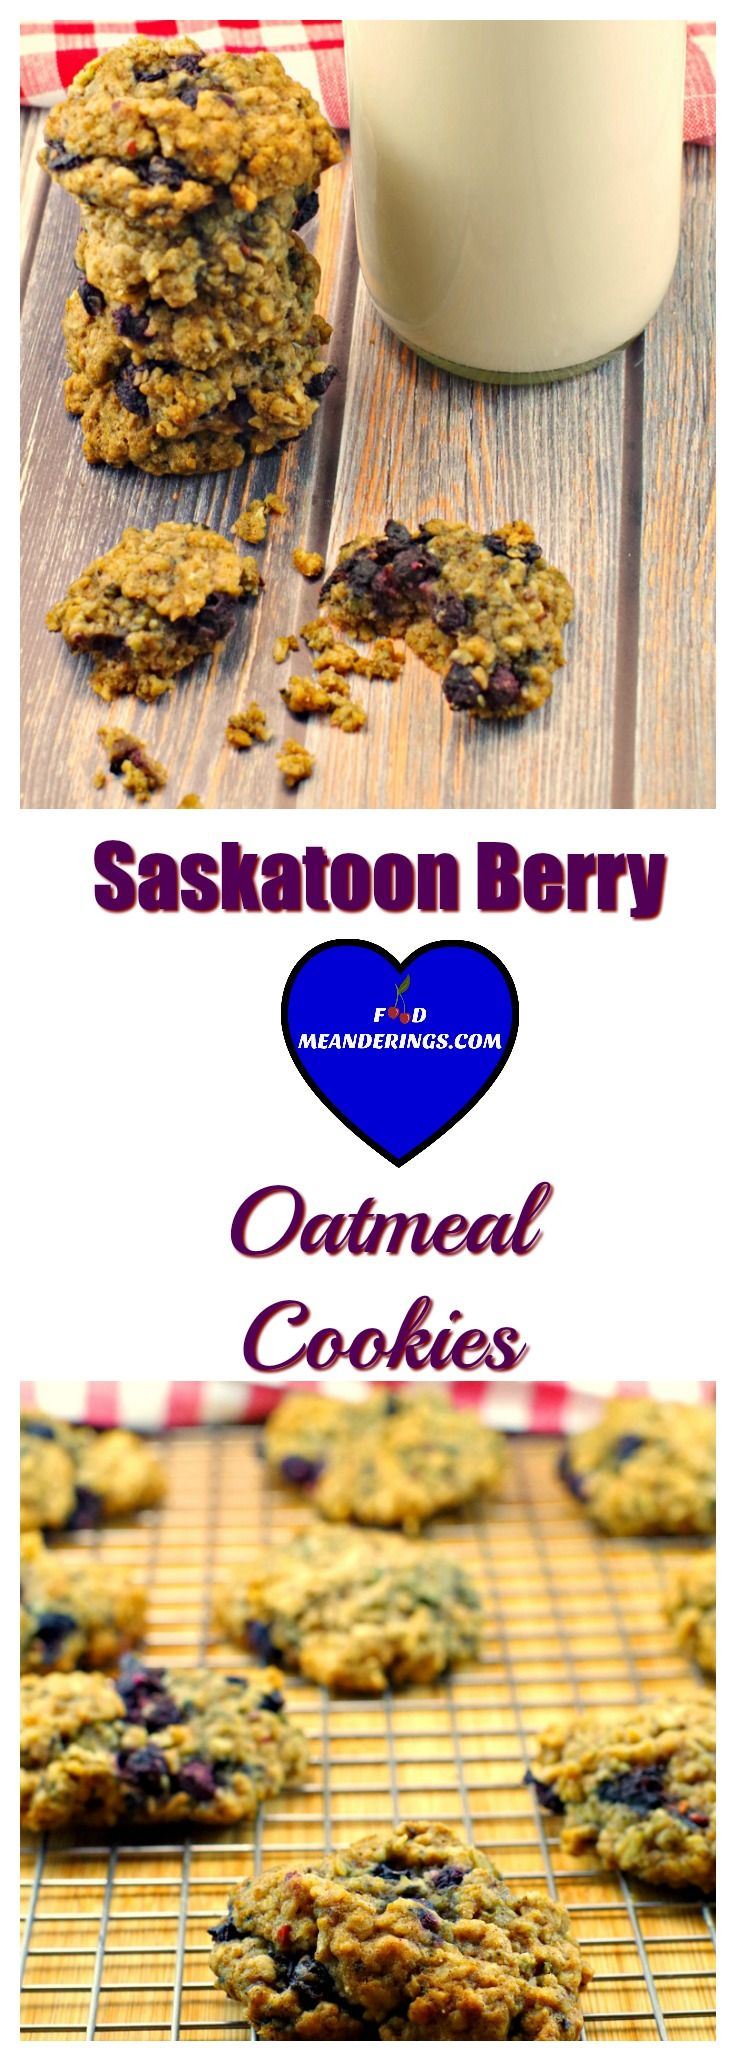 These soft oatmeal Saskatoon berry cookies (Juneberry cookies), with a nutty almond note, are perfect for any time of the year. A delicious Saskatoon berry recipe!